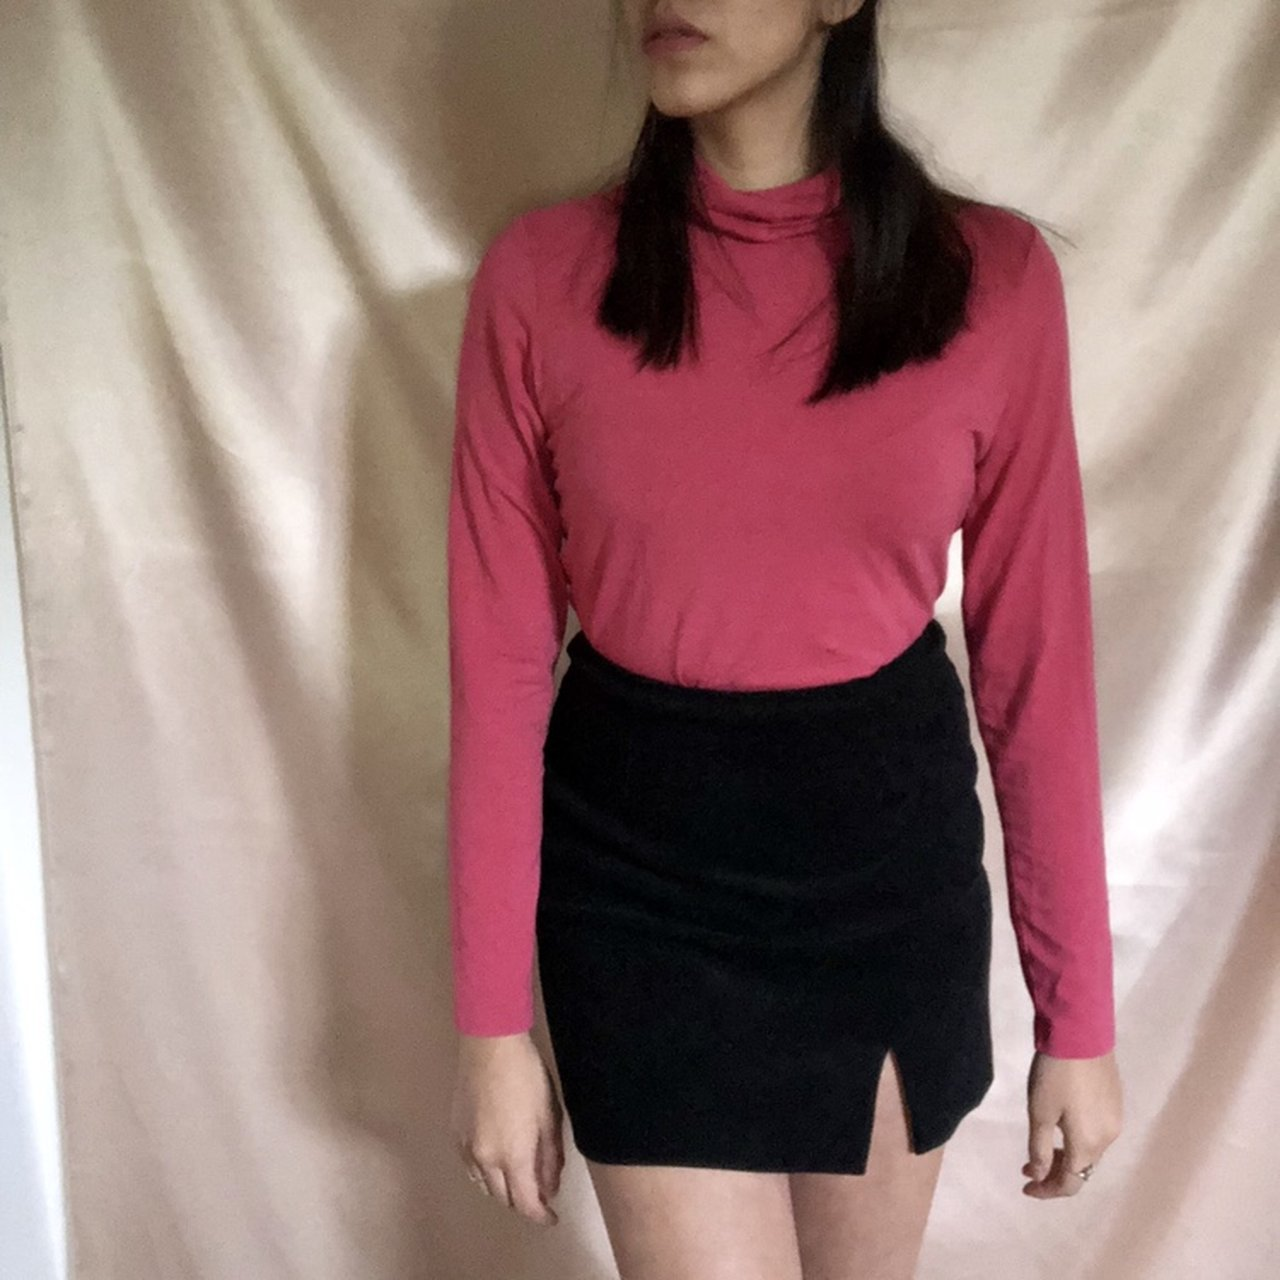 48c5bded1c3 Gorgeous pink turtleneck! Perfect for fall!